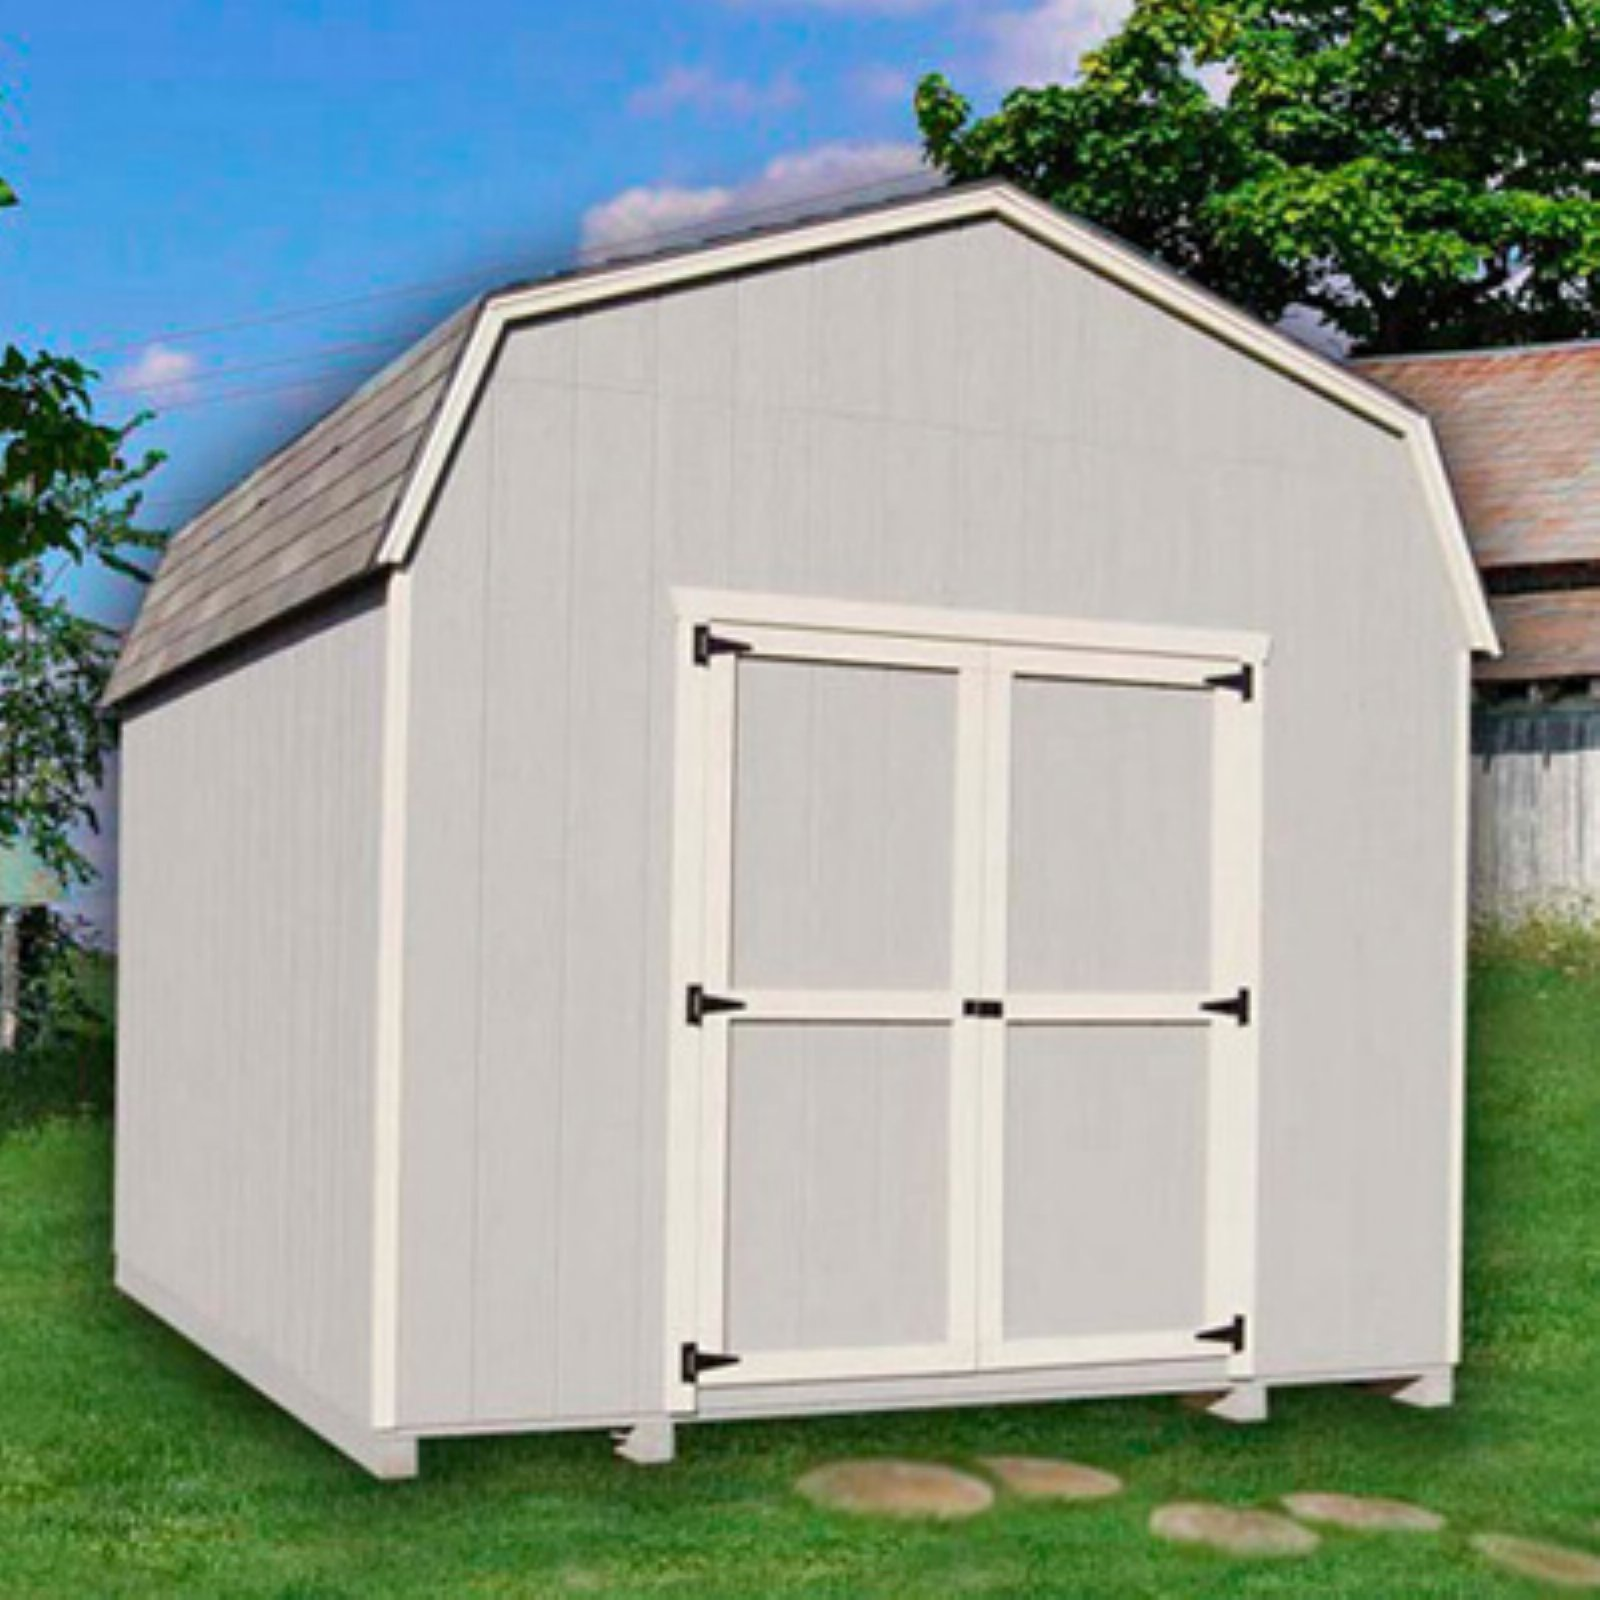 Little Cottage 16 x 12 ft. Value Gambrel Barn Precut Storage Shed - 6 ft. Barn